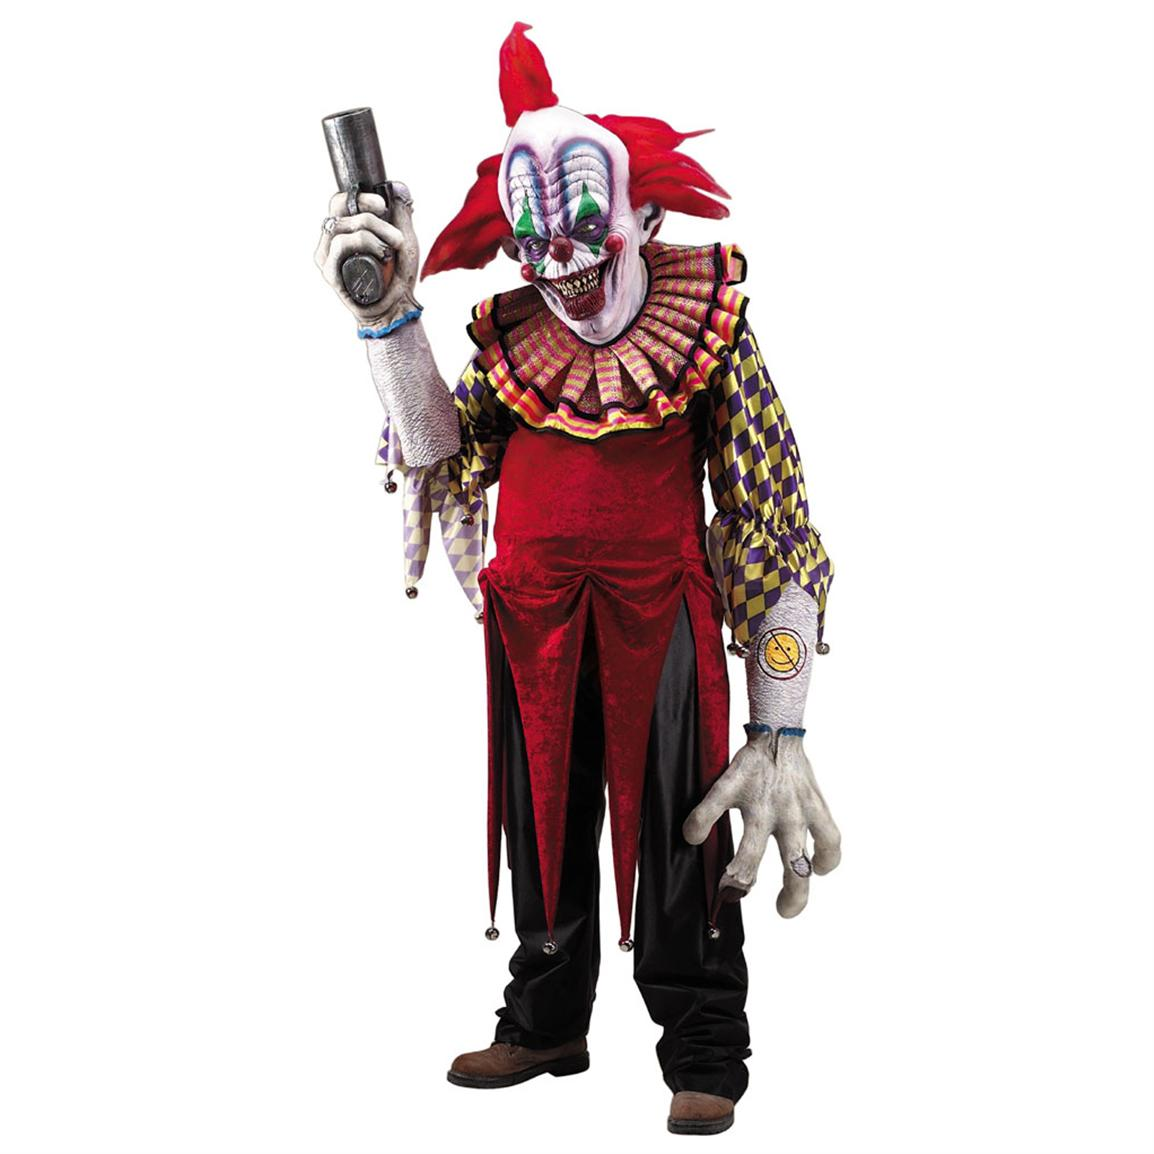 Adult Giggles the Clown Creature Reacher Costume